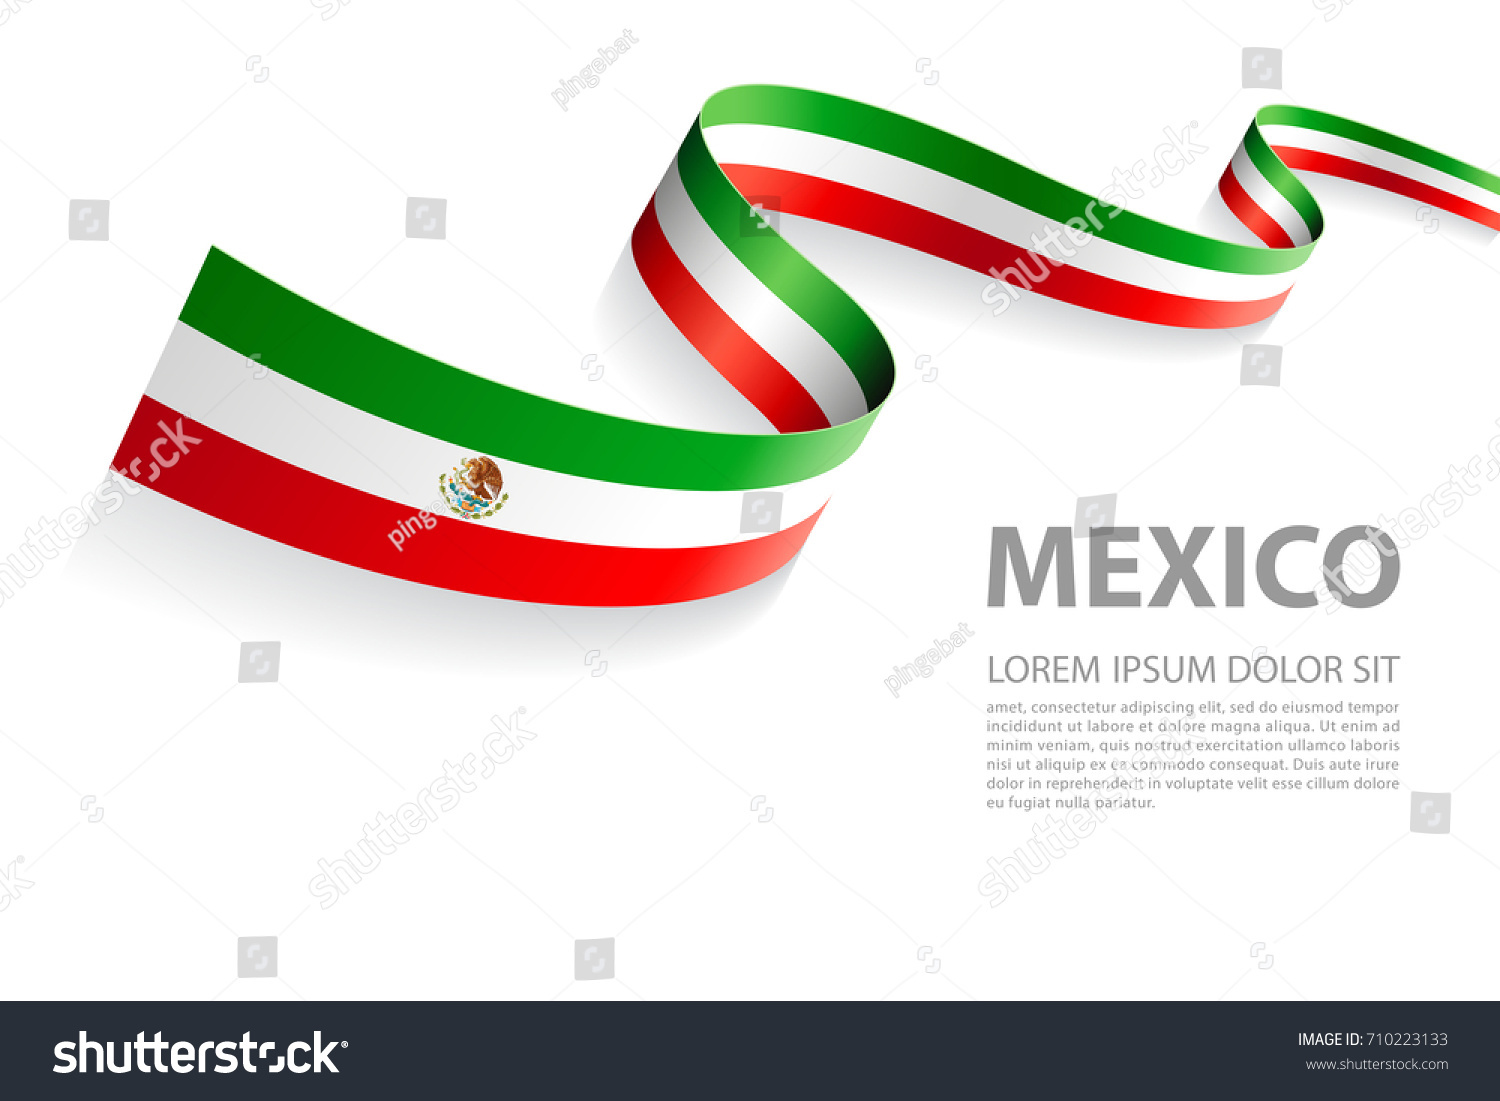 Lovely mexican flag colors images example resume and template vector illustration banner mexican flag colors stock vector biocorpaavc Gallery